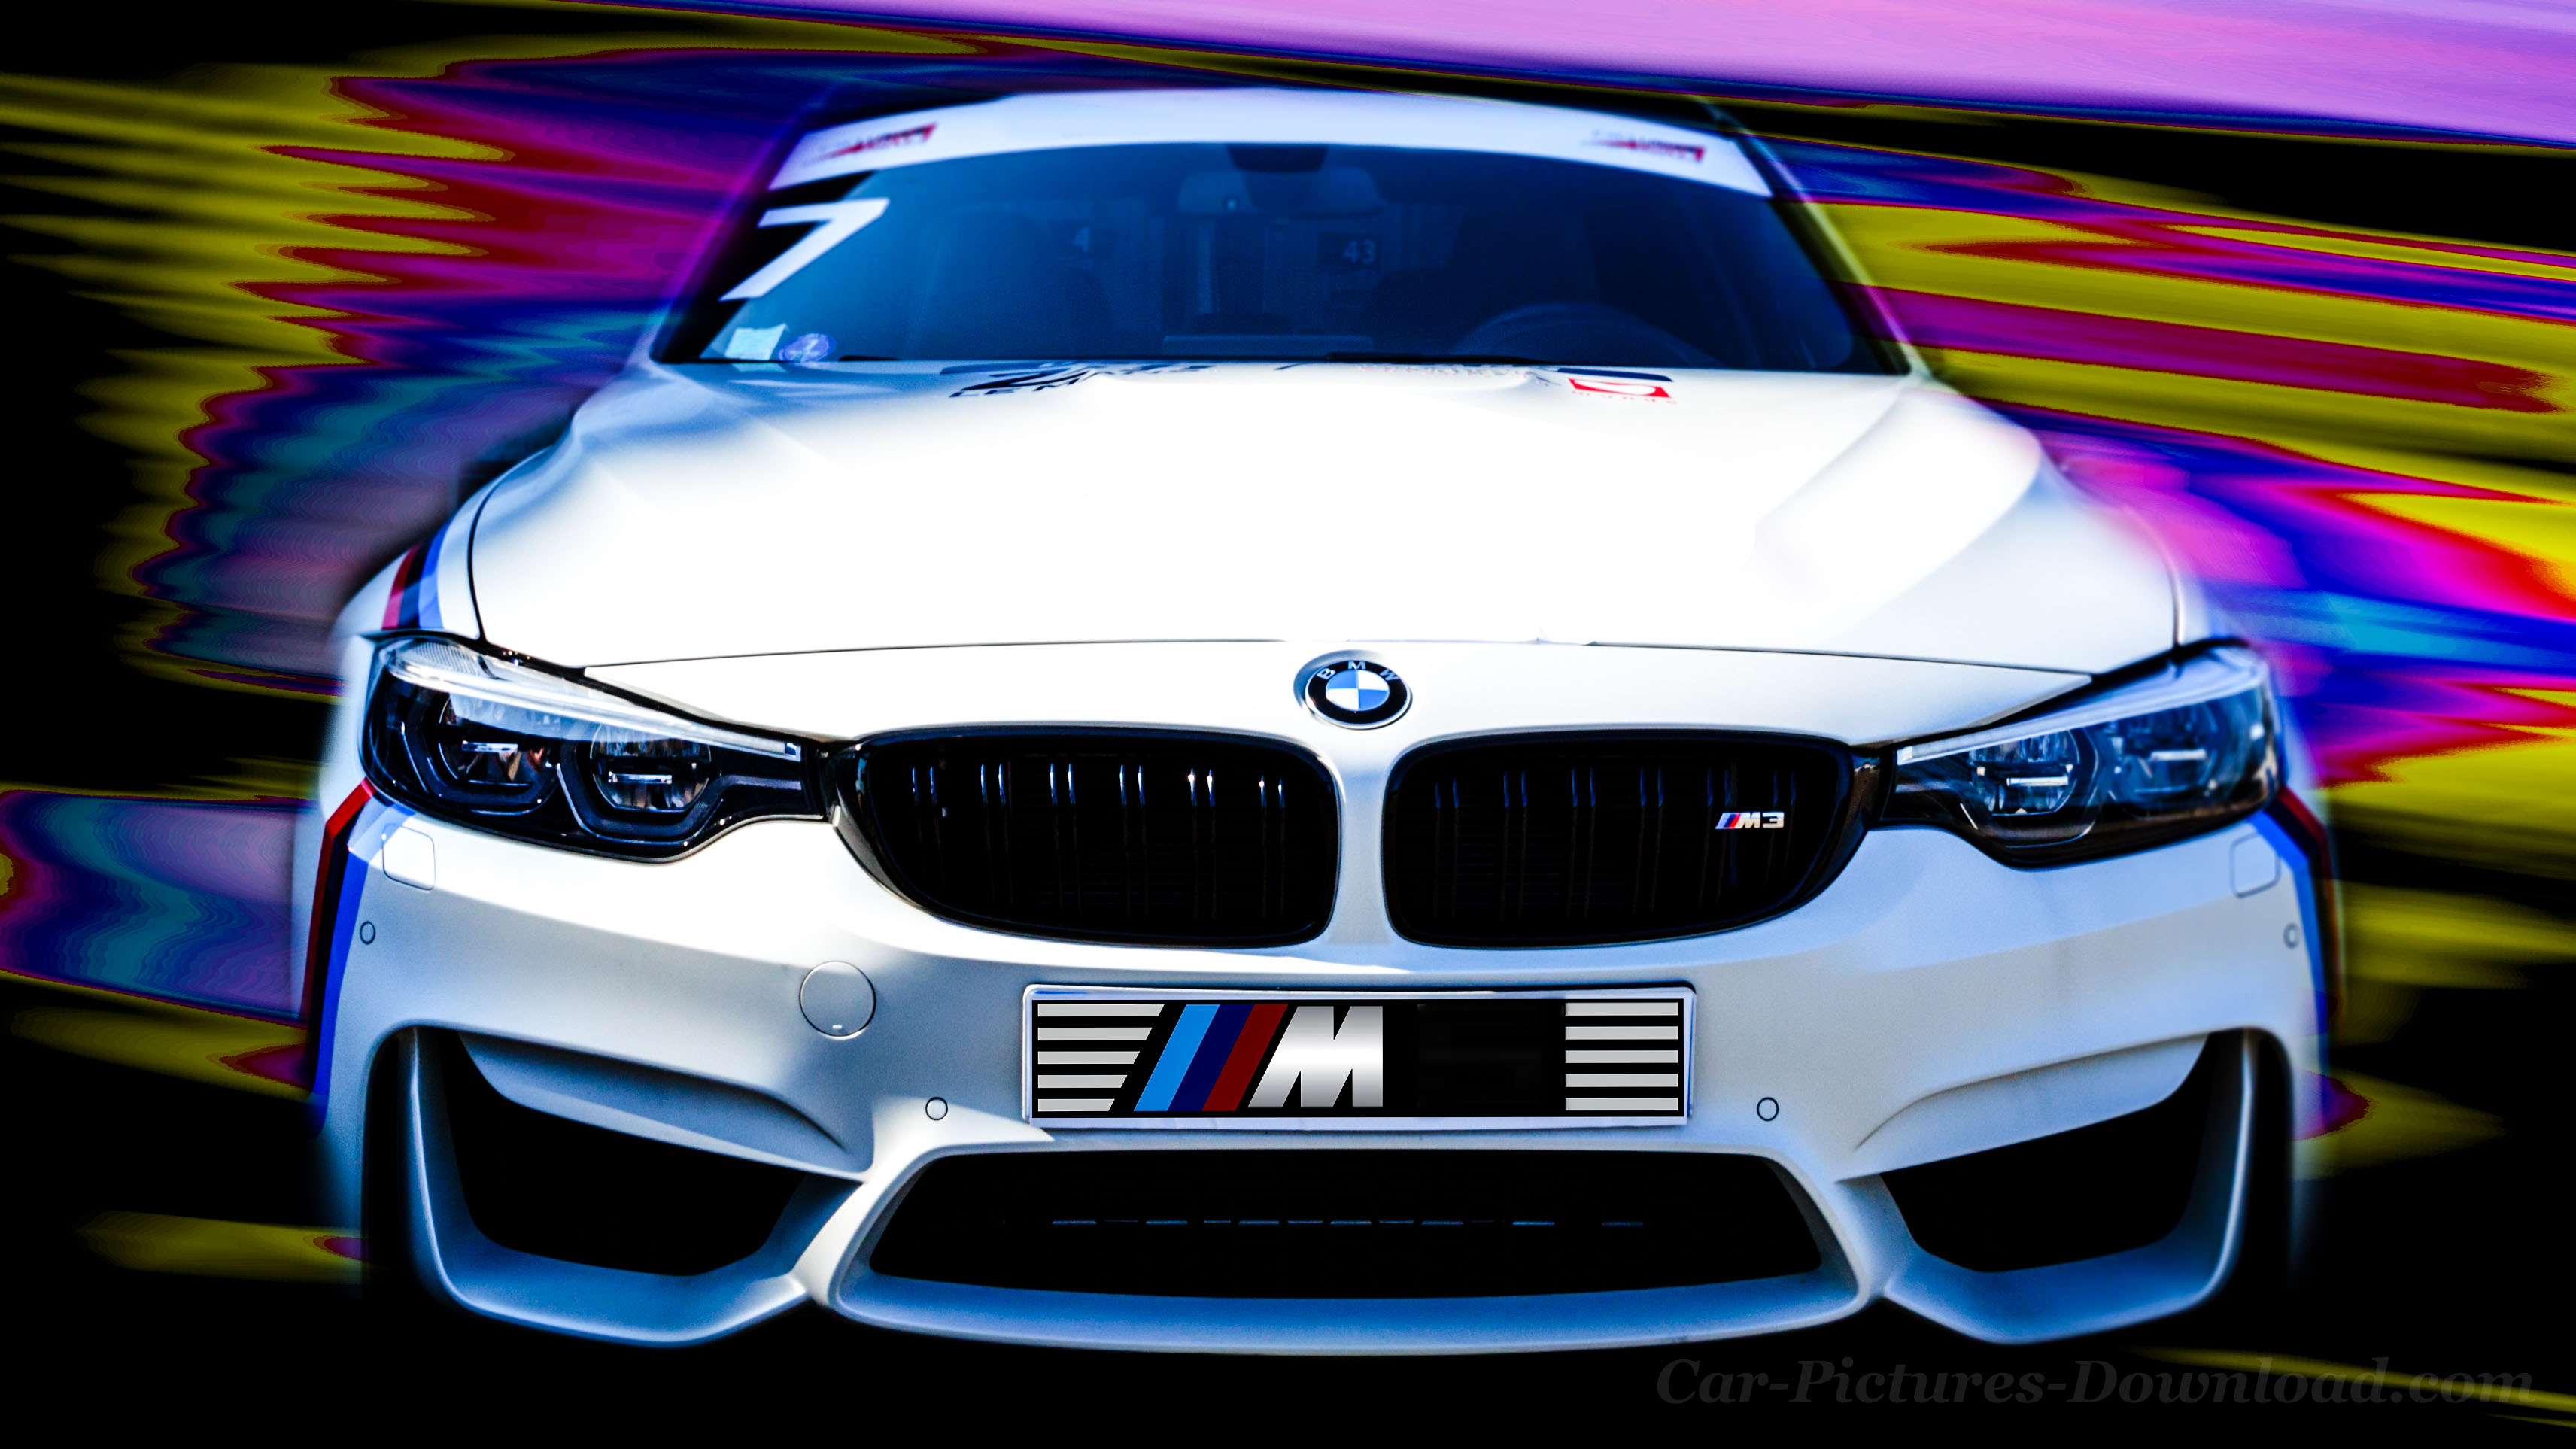 Bmw M3 Wallpaper Pictures For All Desktop Mobile Download Free